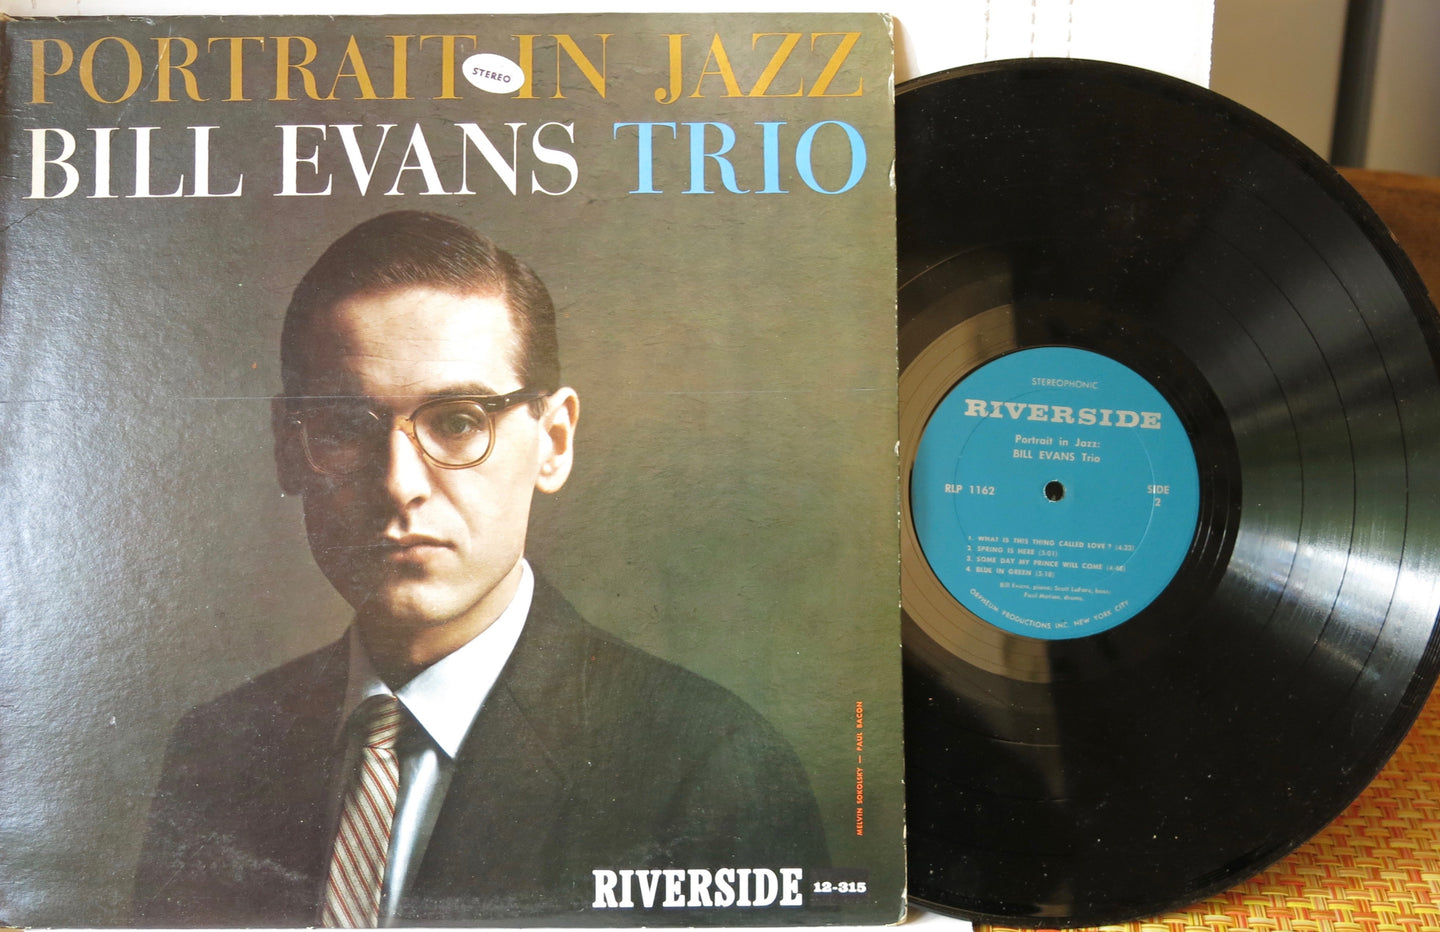 Bill Evans Trio ‎– Portrait In Jazz | Vinyl Record by Riverside